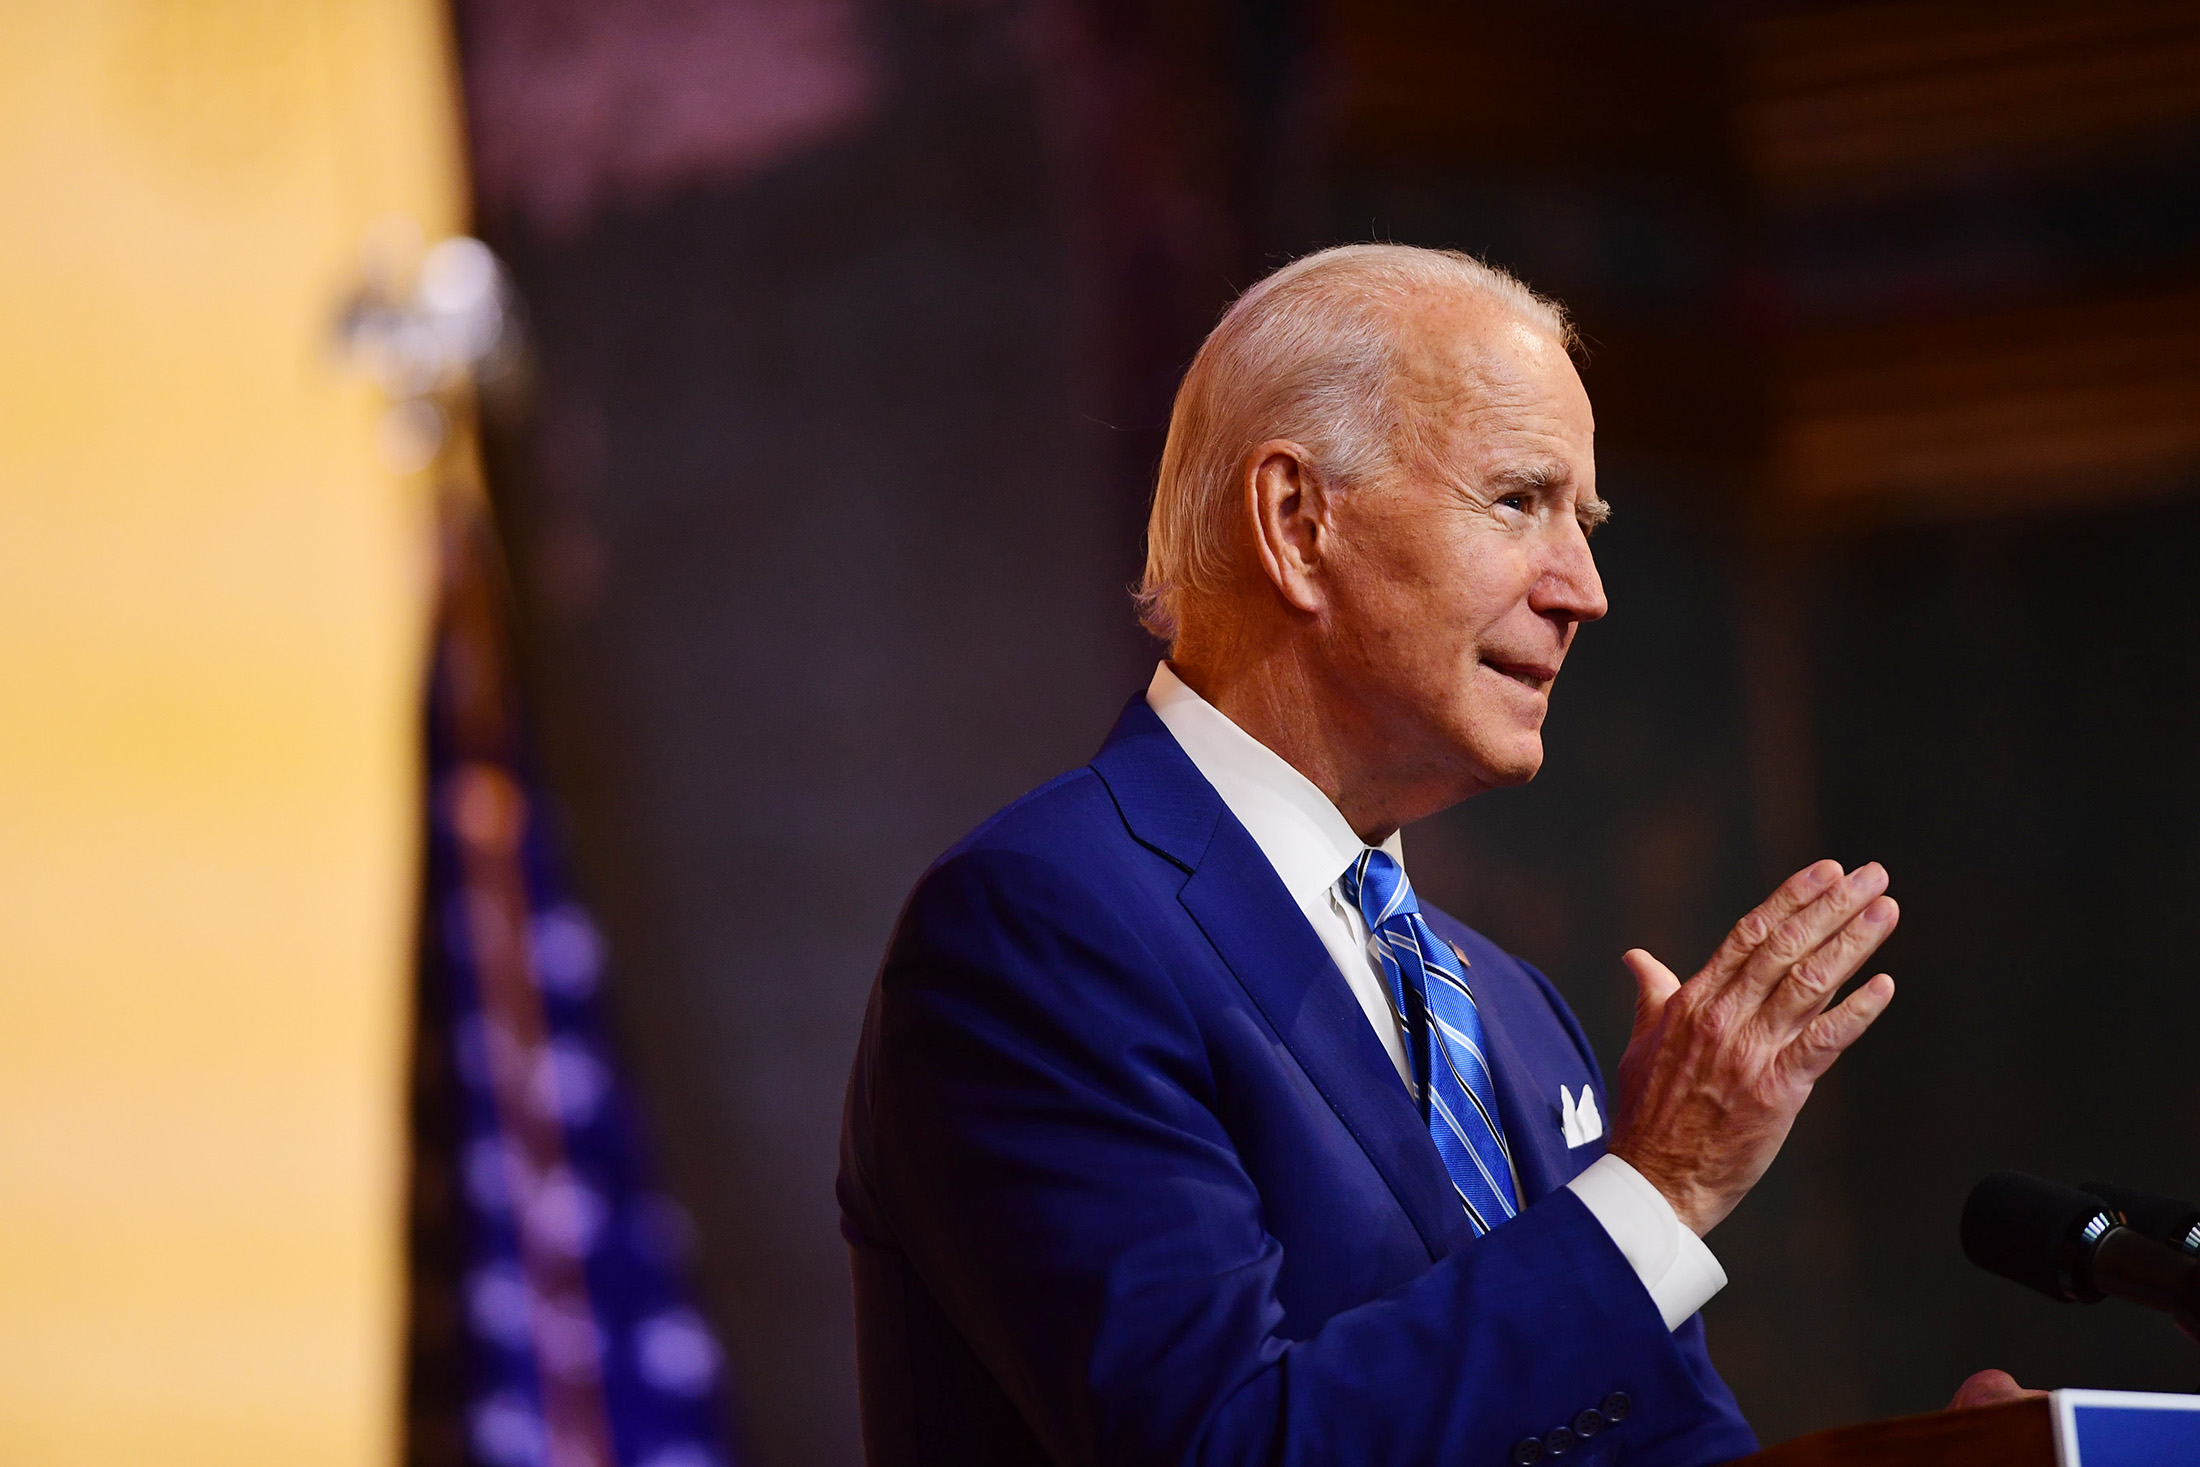 President-elect Joe Biden delivers a Thanksgiving address at the Queen Theatre on November 25, in Wilmington, Delaware.